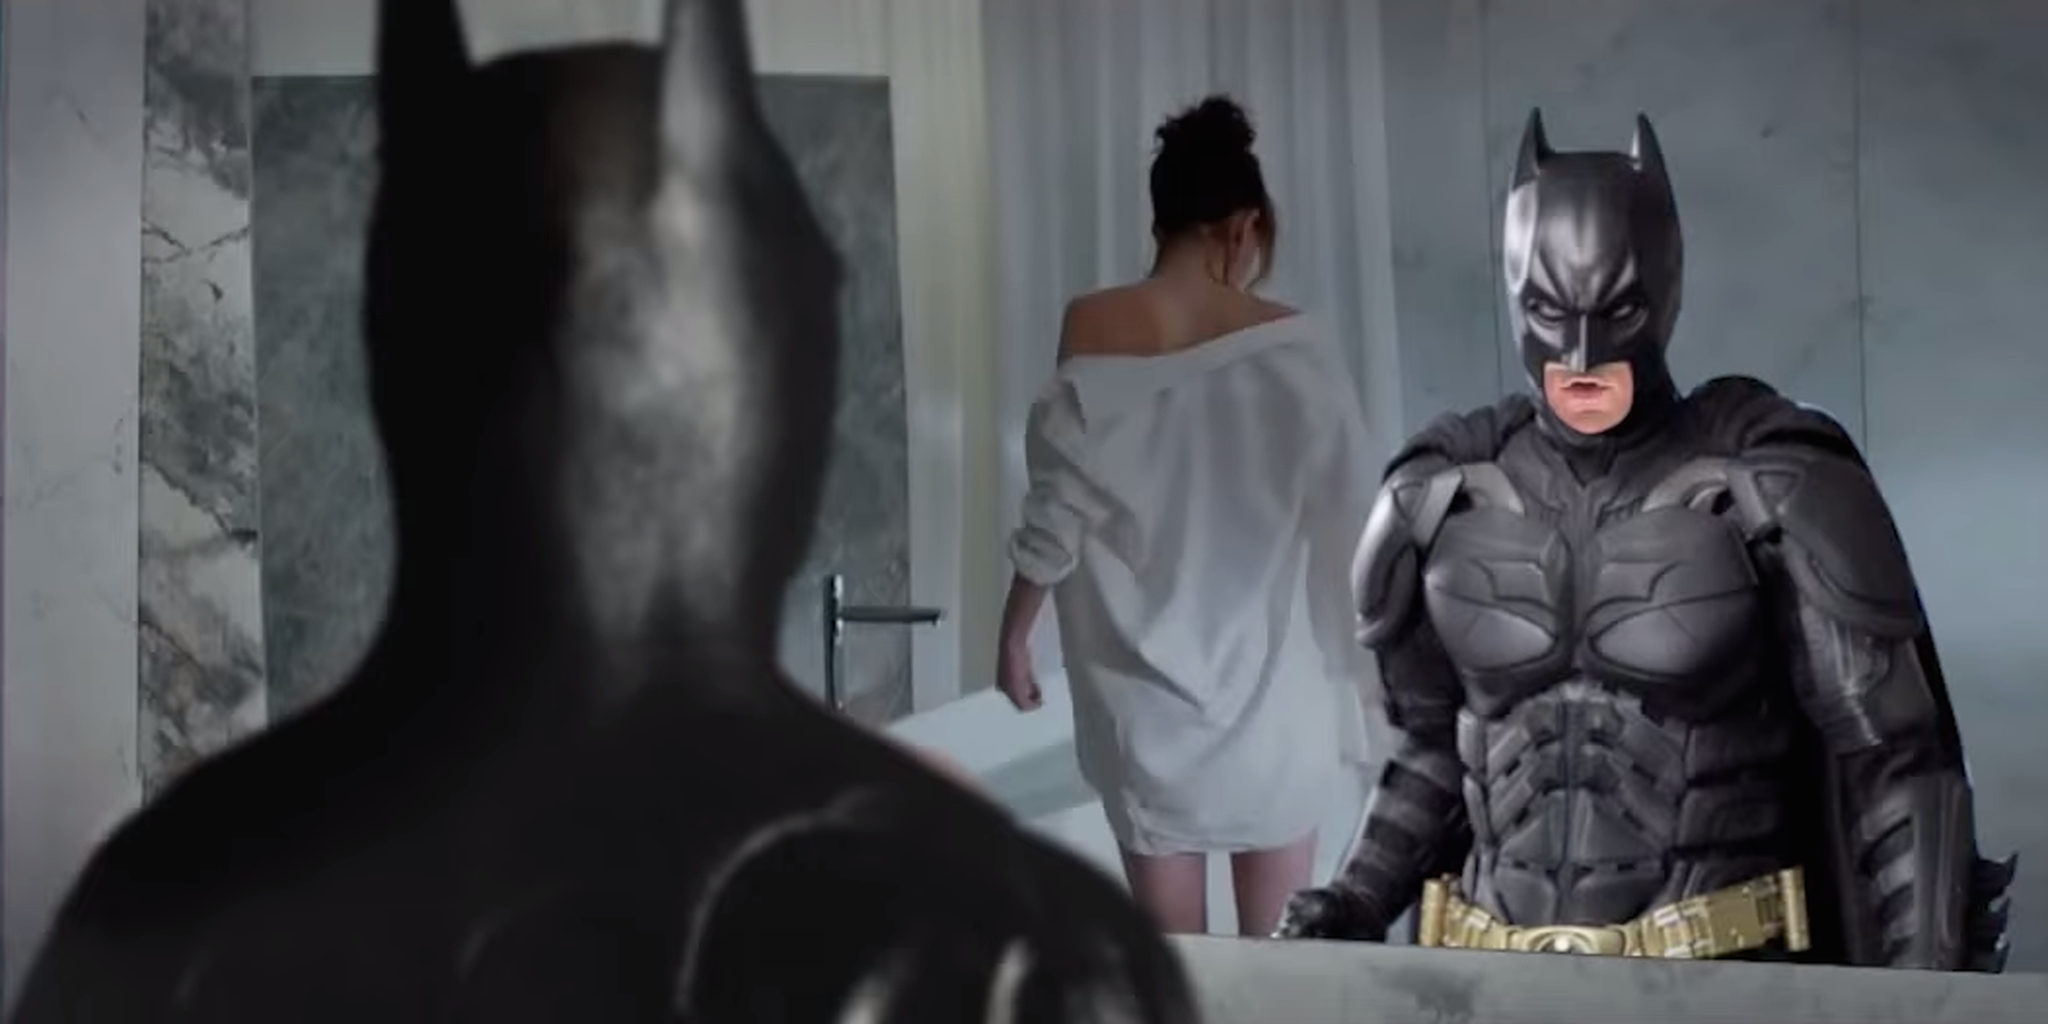 batman fifty shades trailer mashup